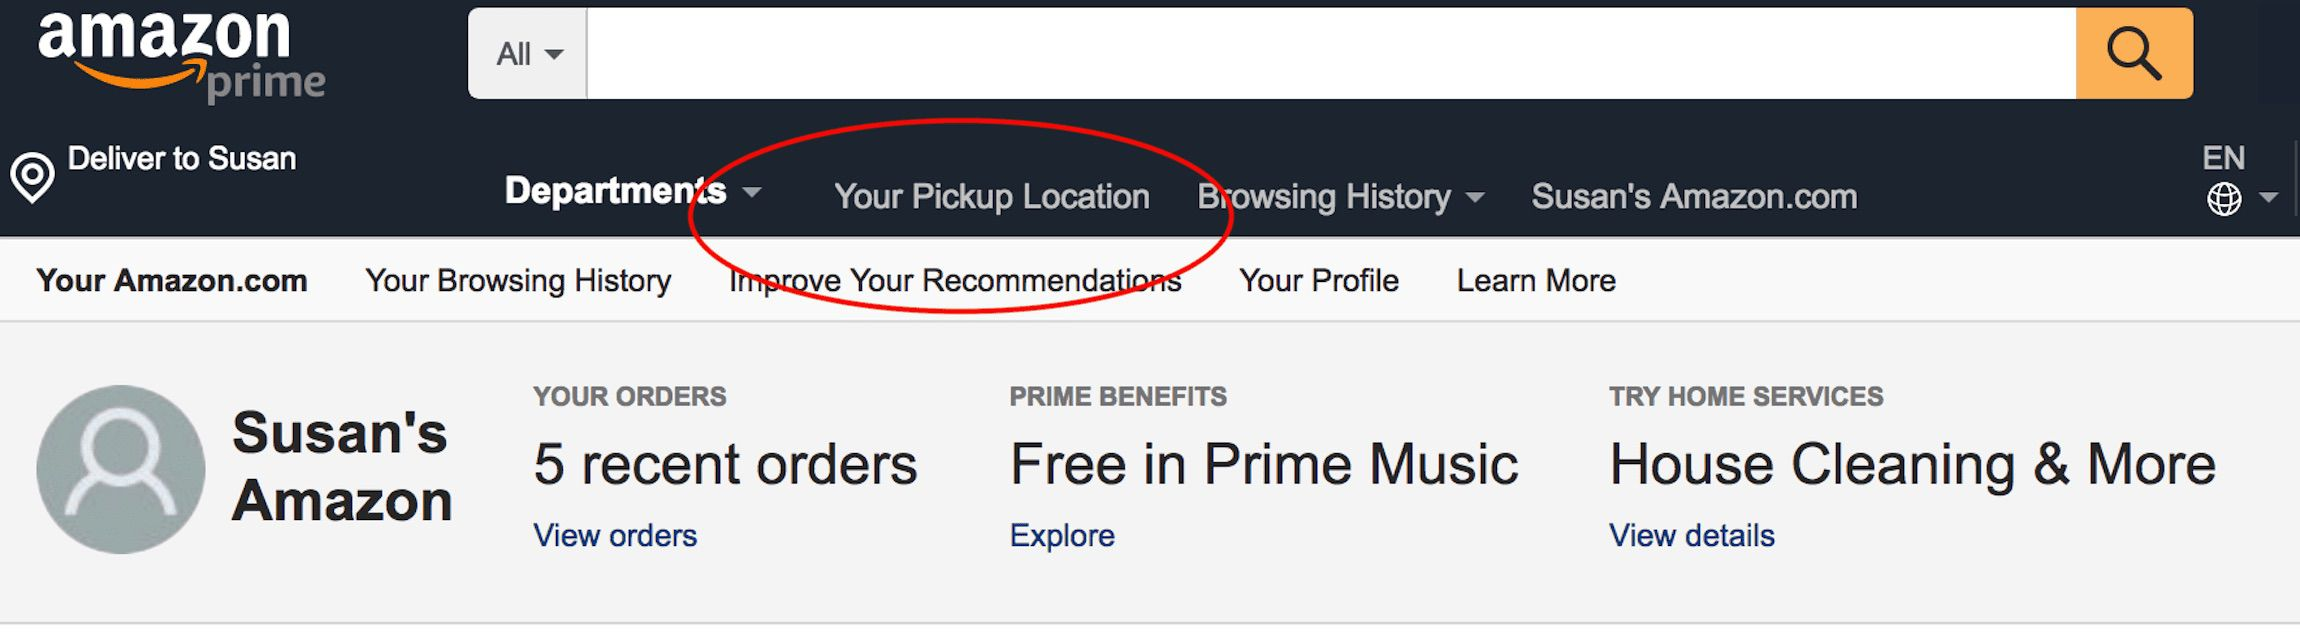 Screenshot of the Amazon home page with Your Pickup Location circled in red